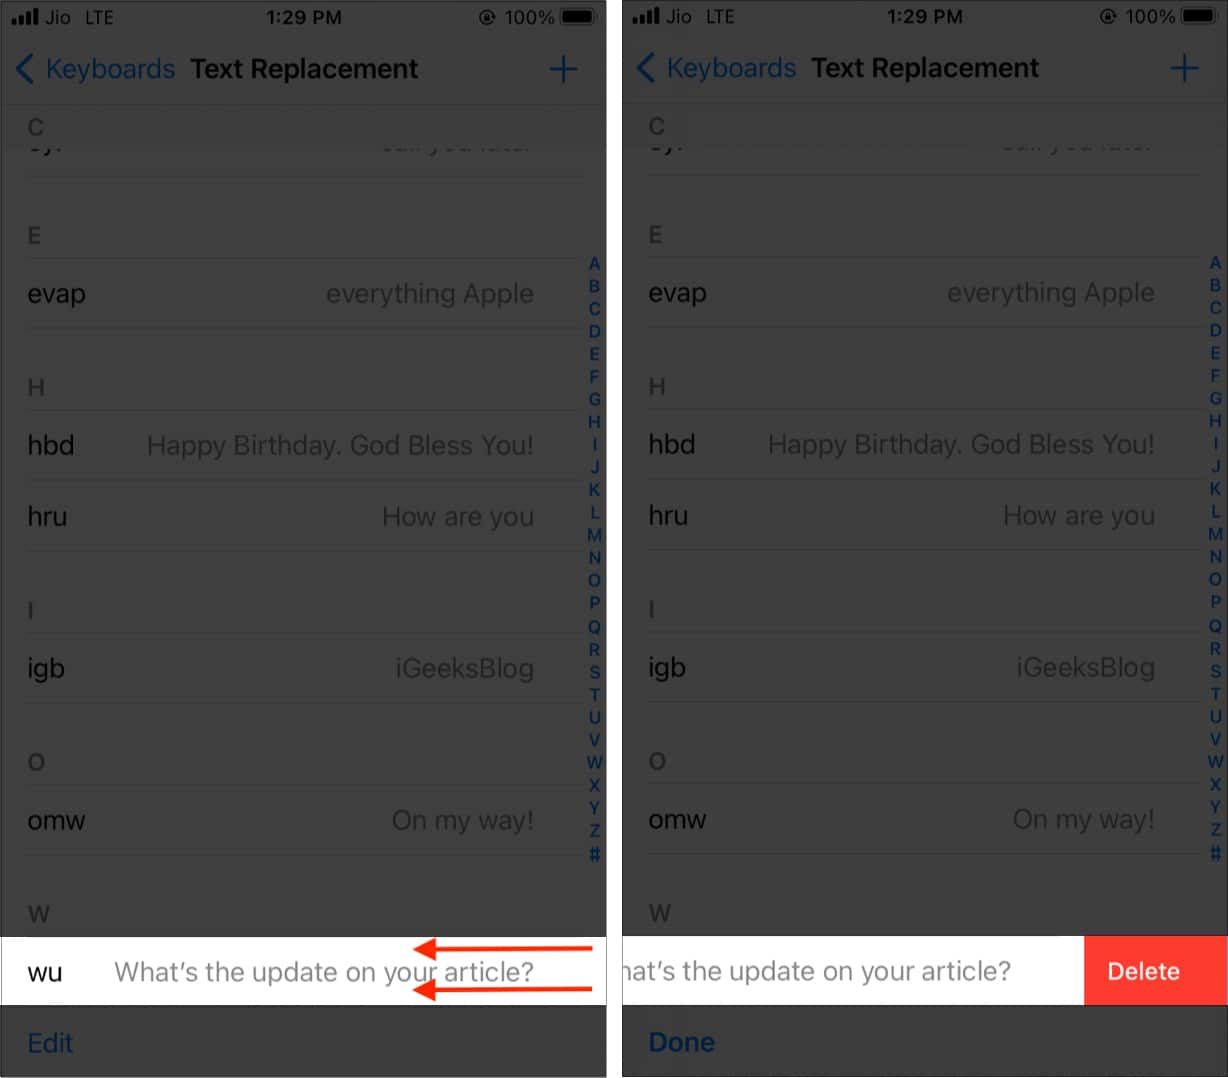 How to delete text shortcuts on iPhone